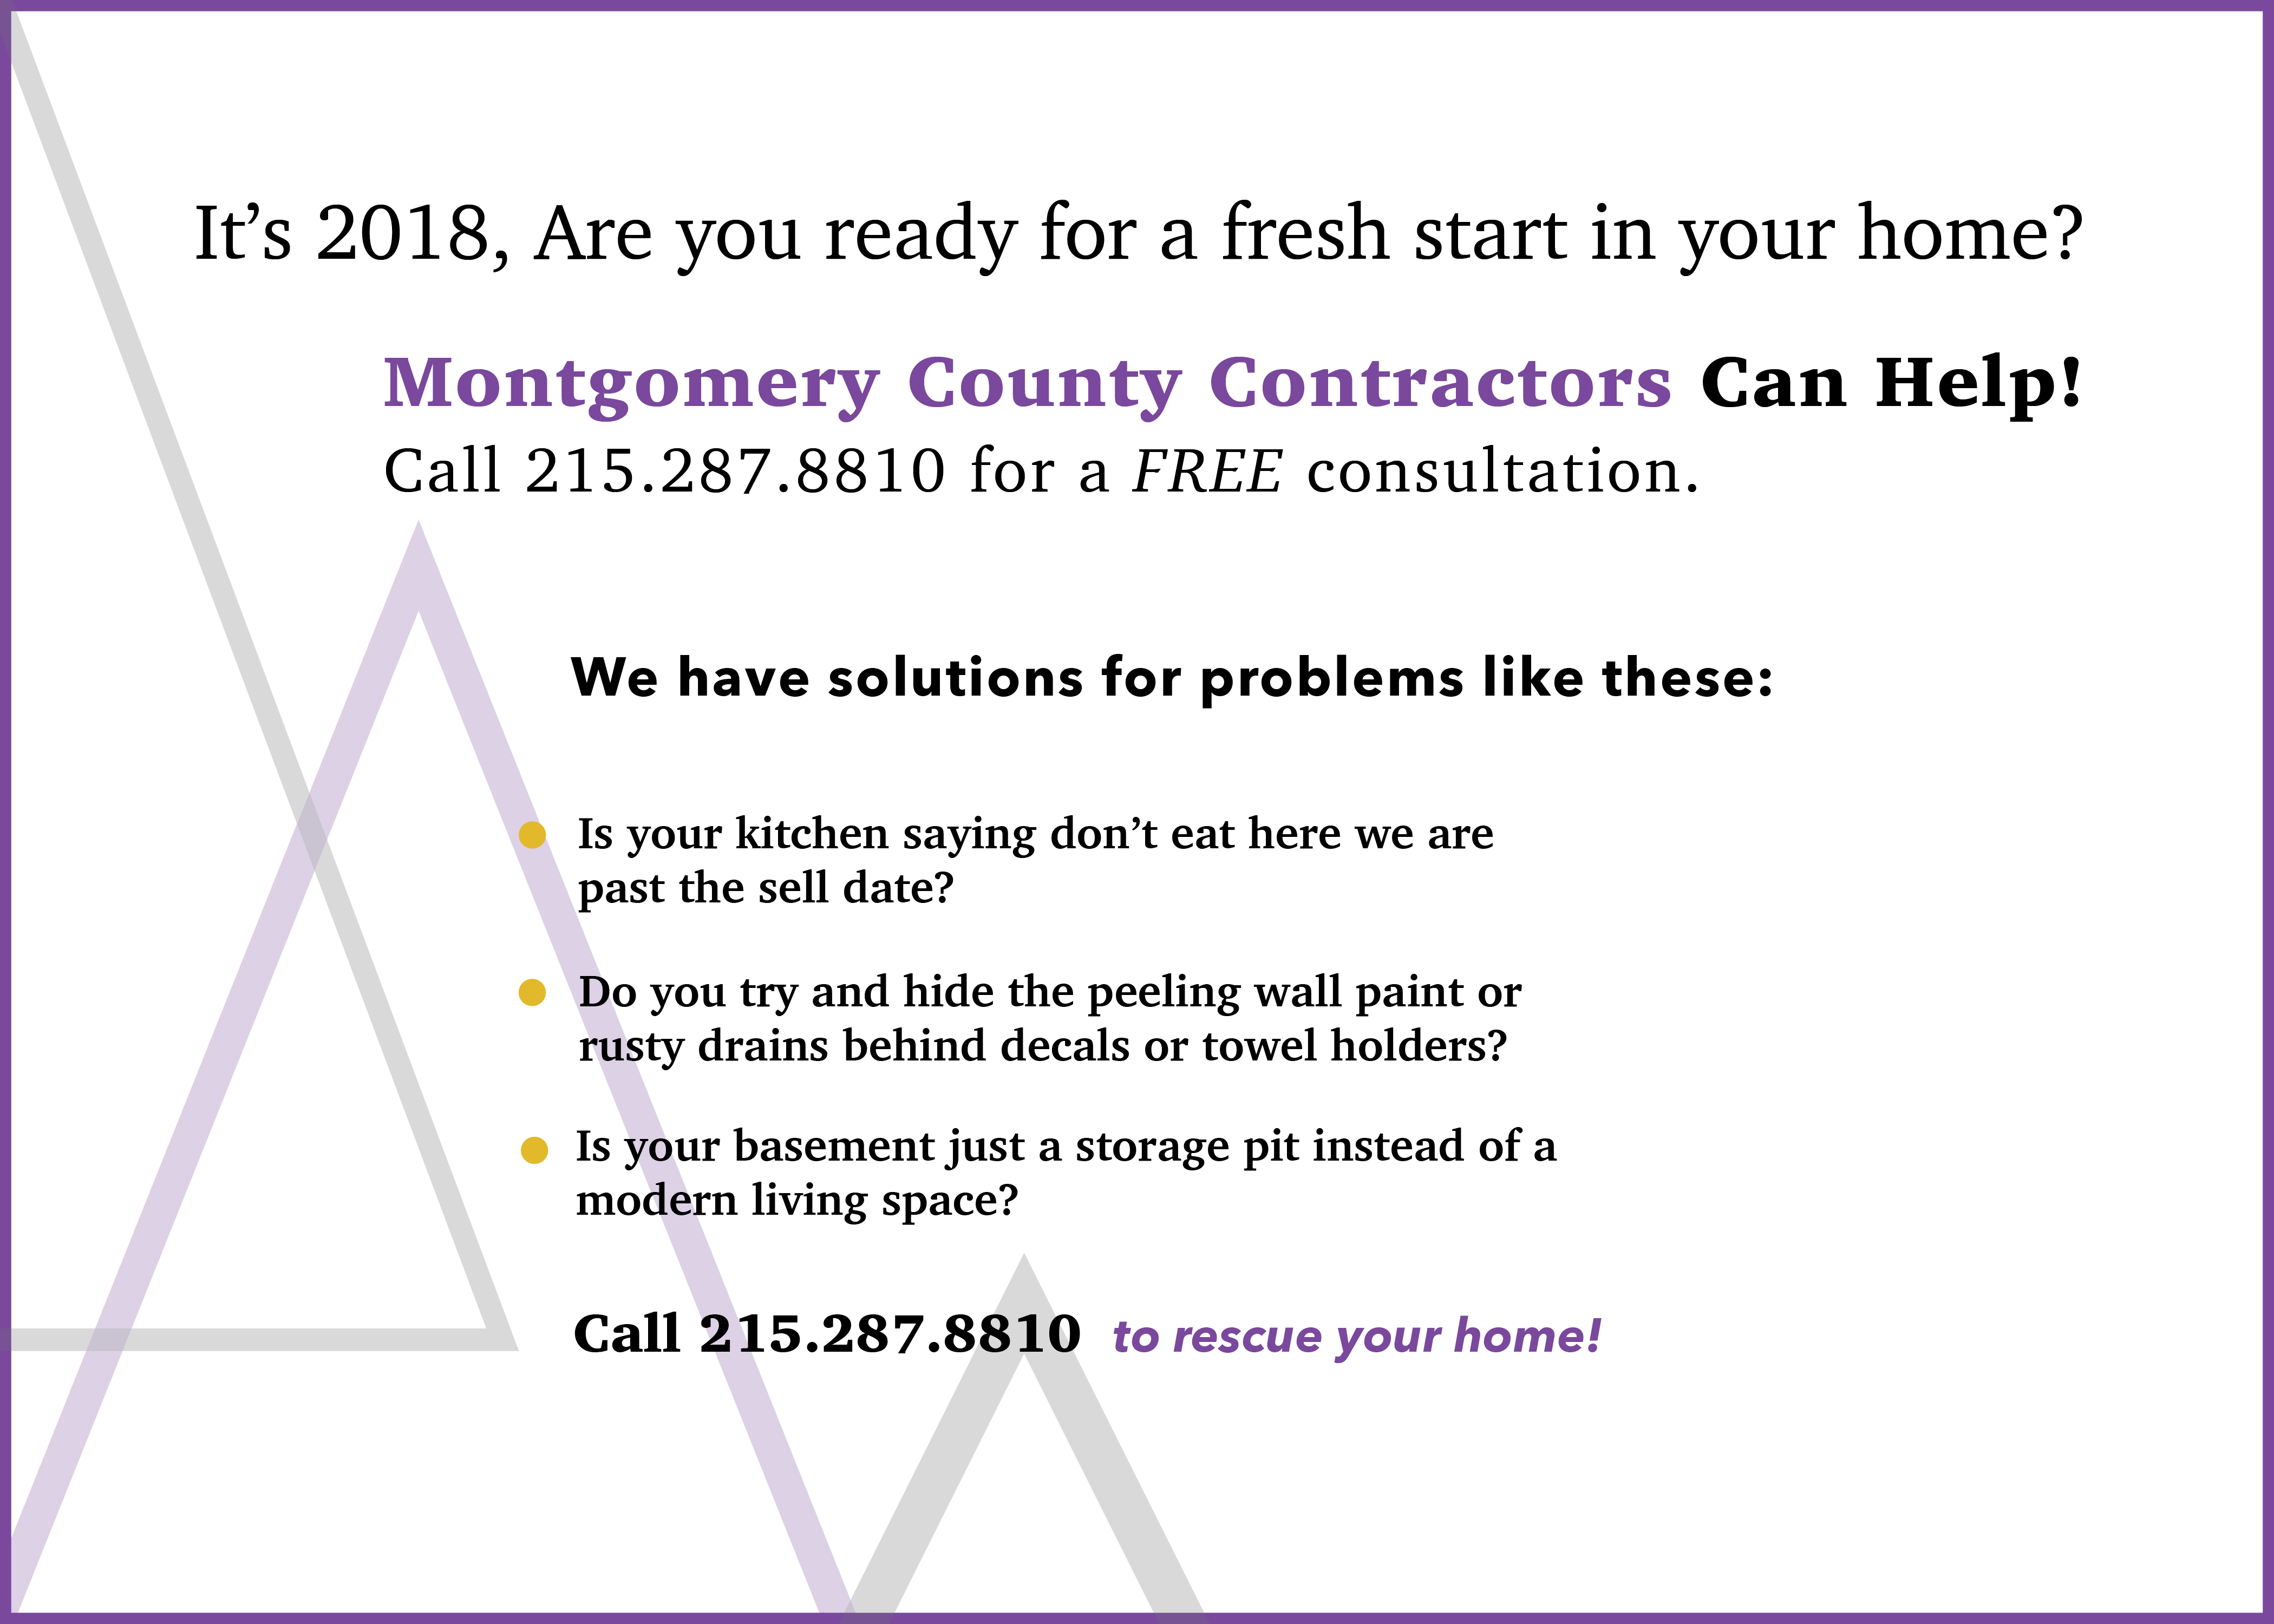 What Montgomery County Contractors provides its clients